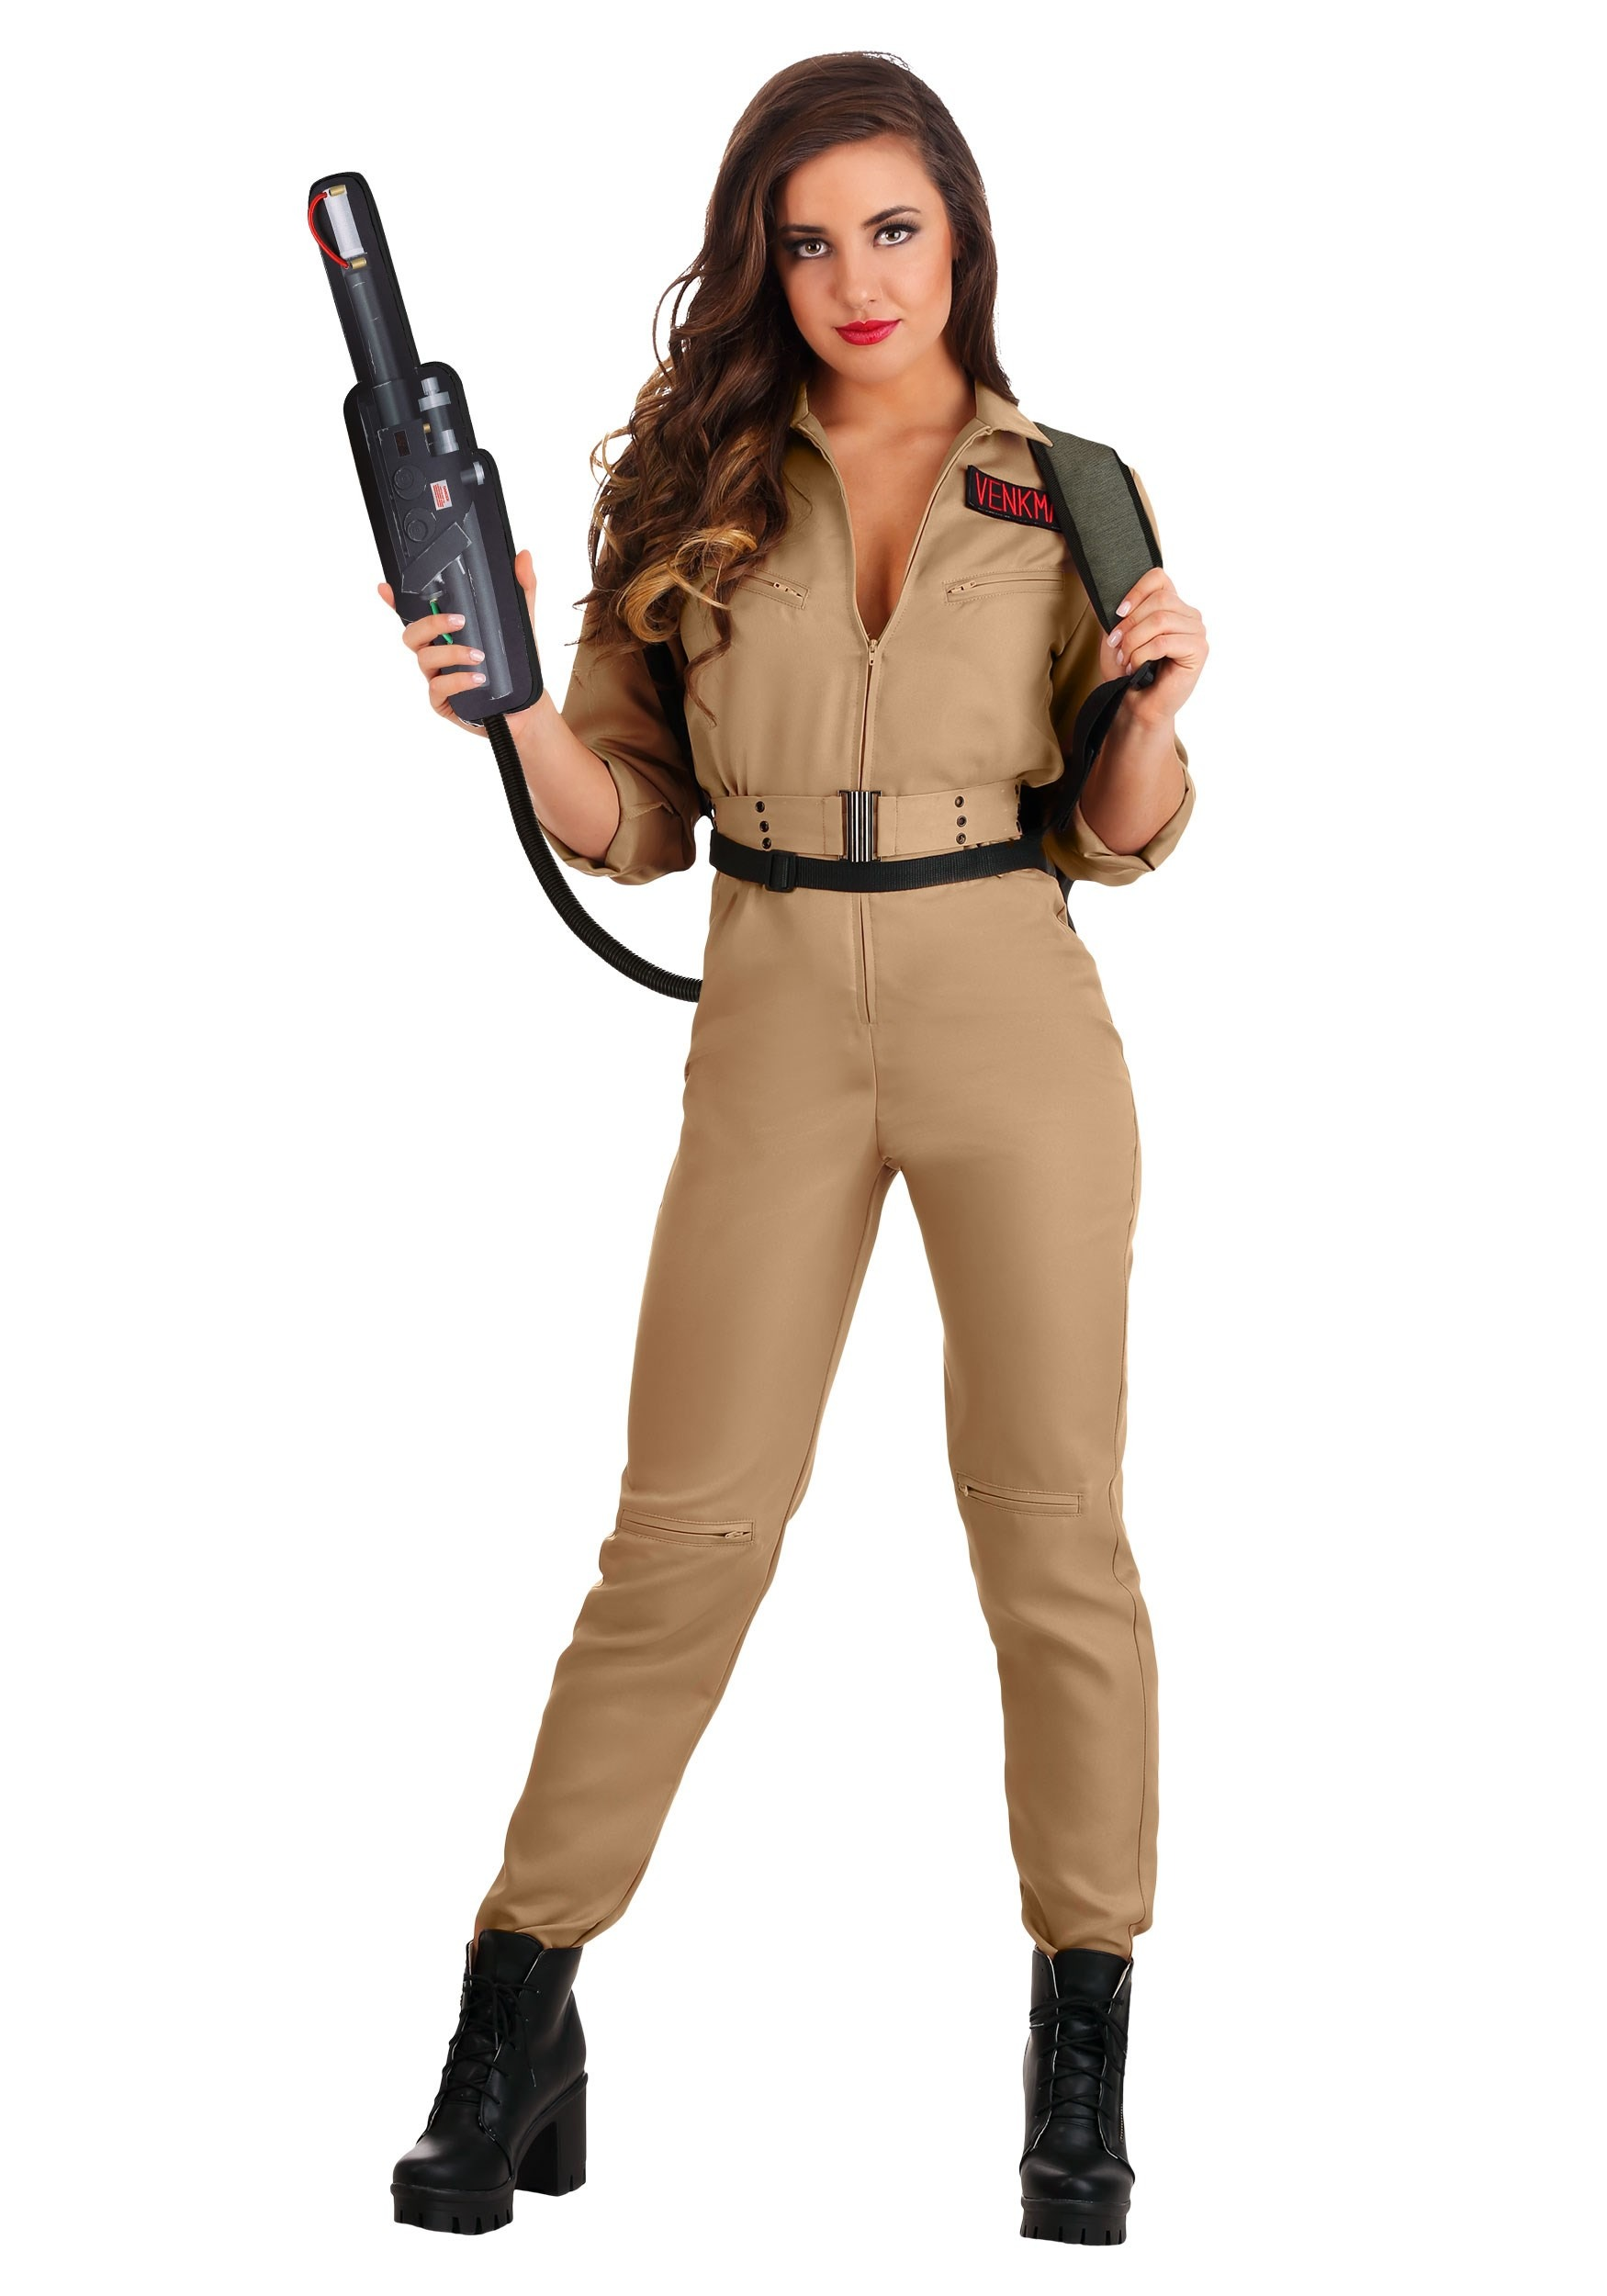 Ghostbusters Plus Size Costume Jumpsuit for Women